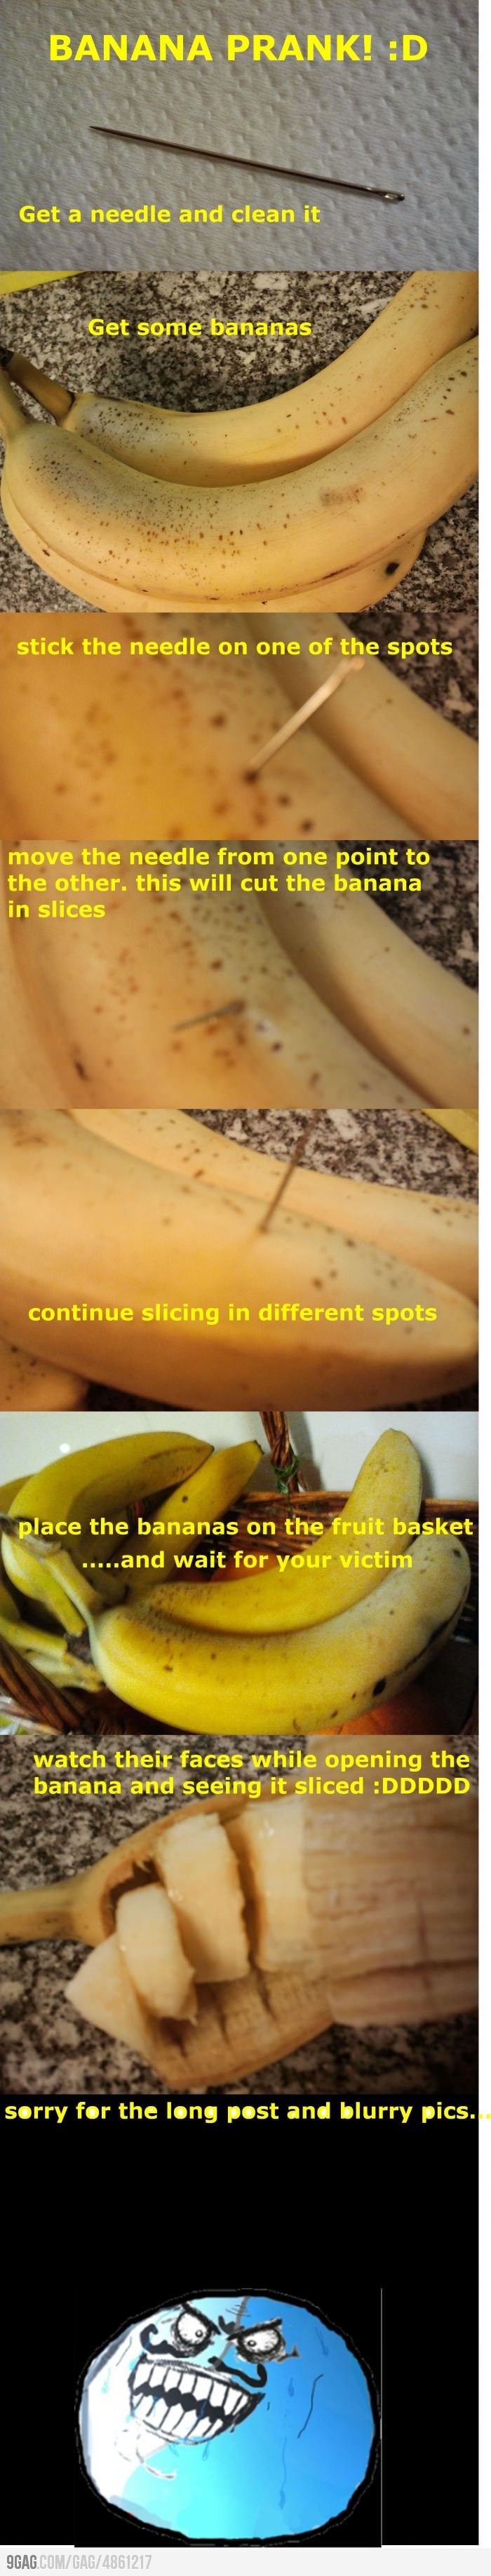 Banana Prank. I am so doing this to my brother.